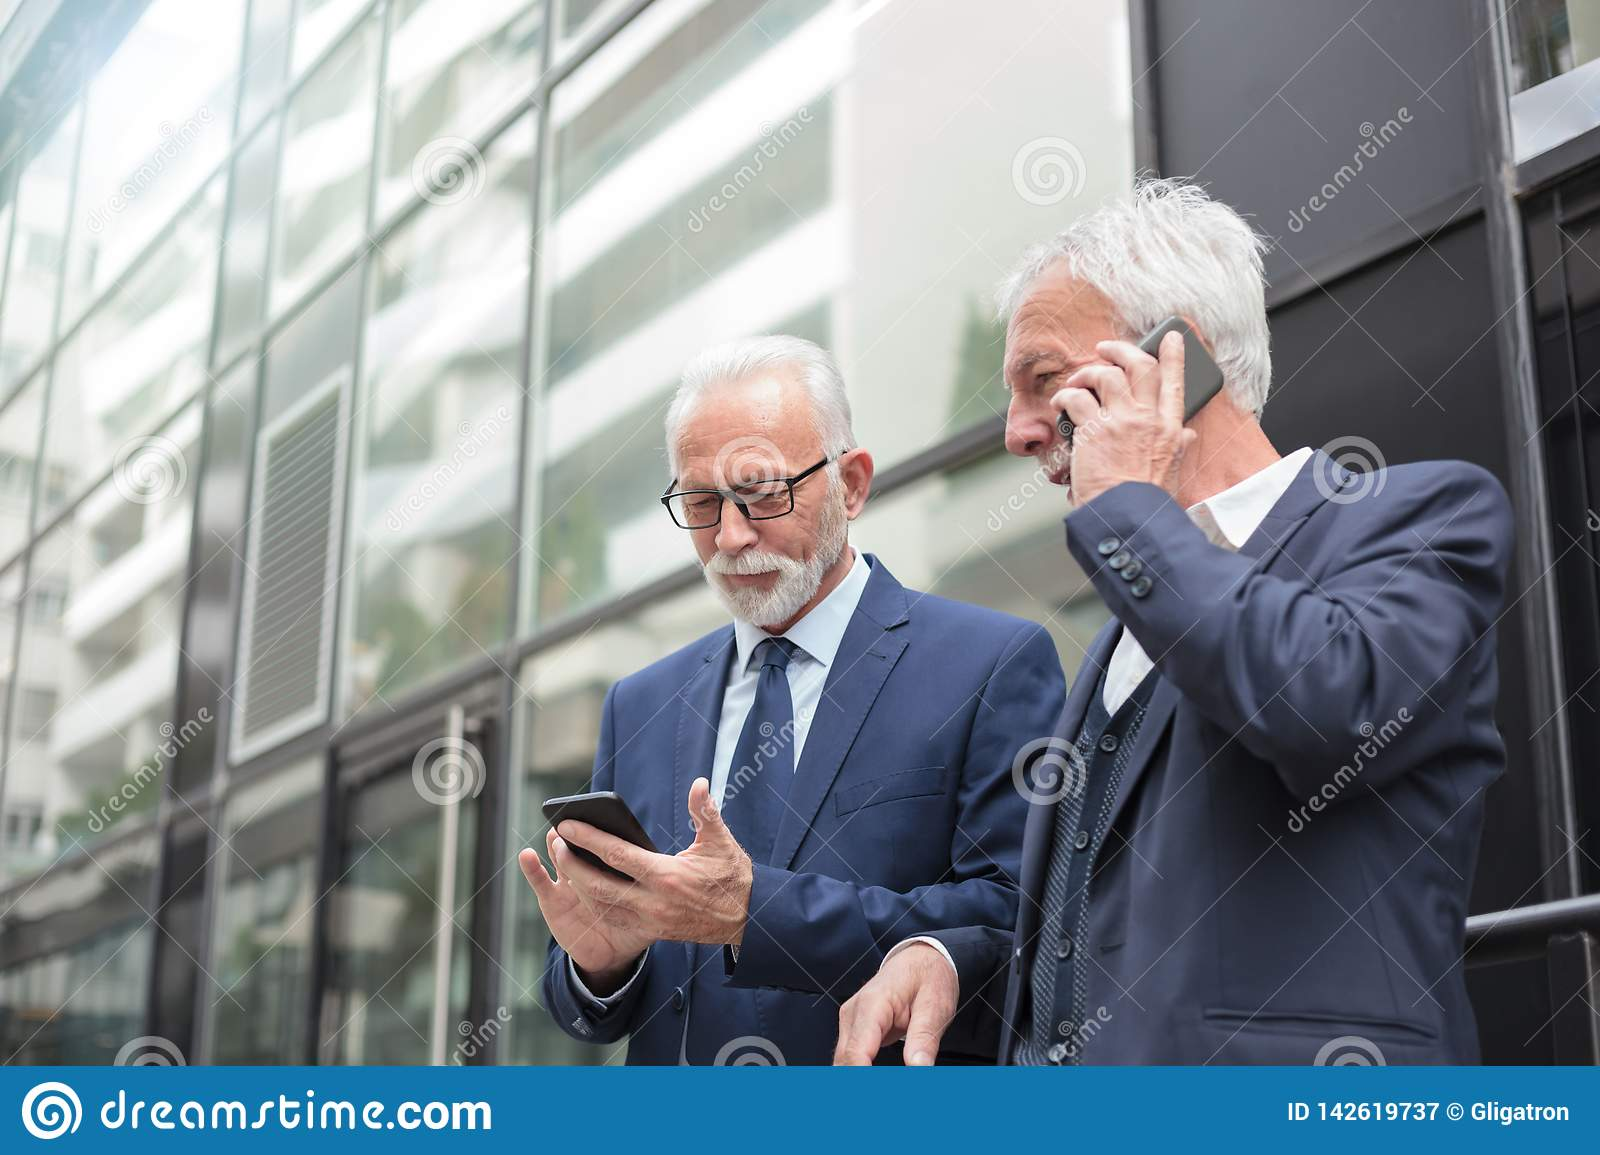 Two happy senior businessmen using smart phones, talking and messaging